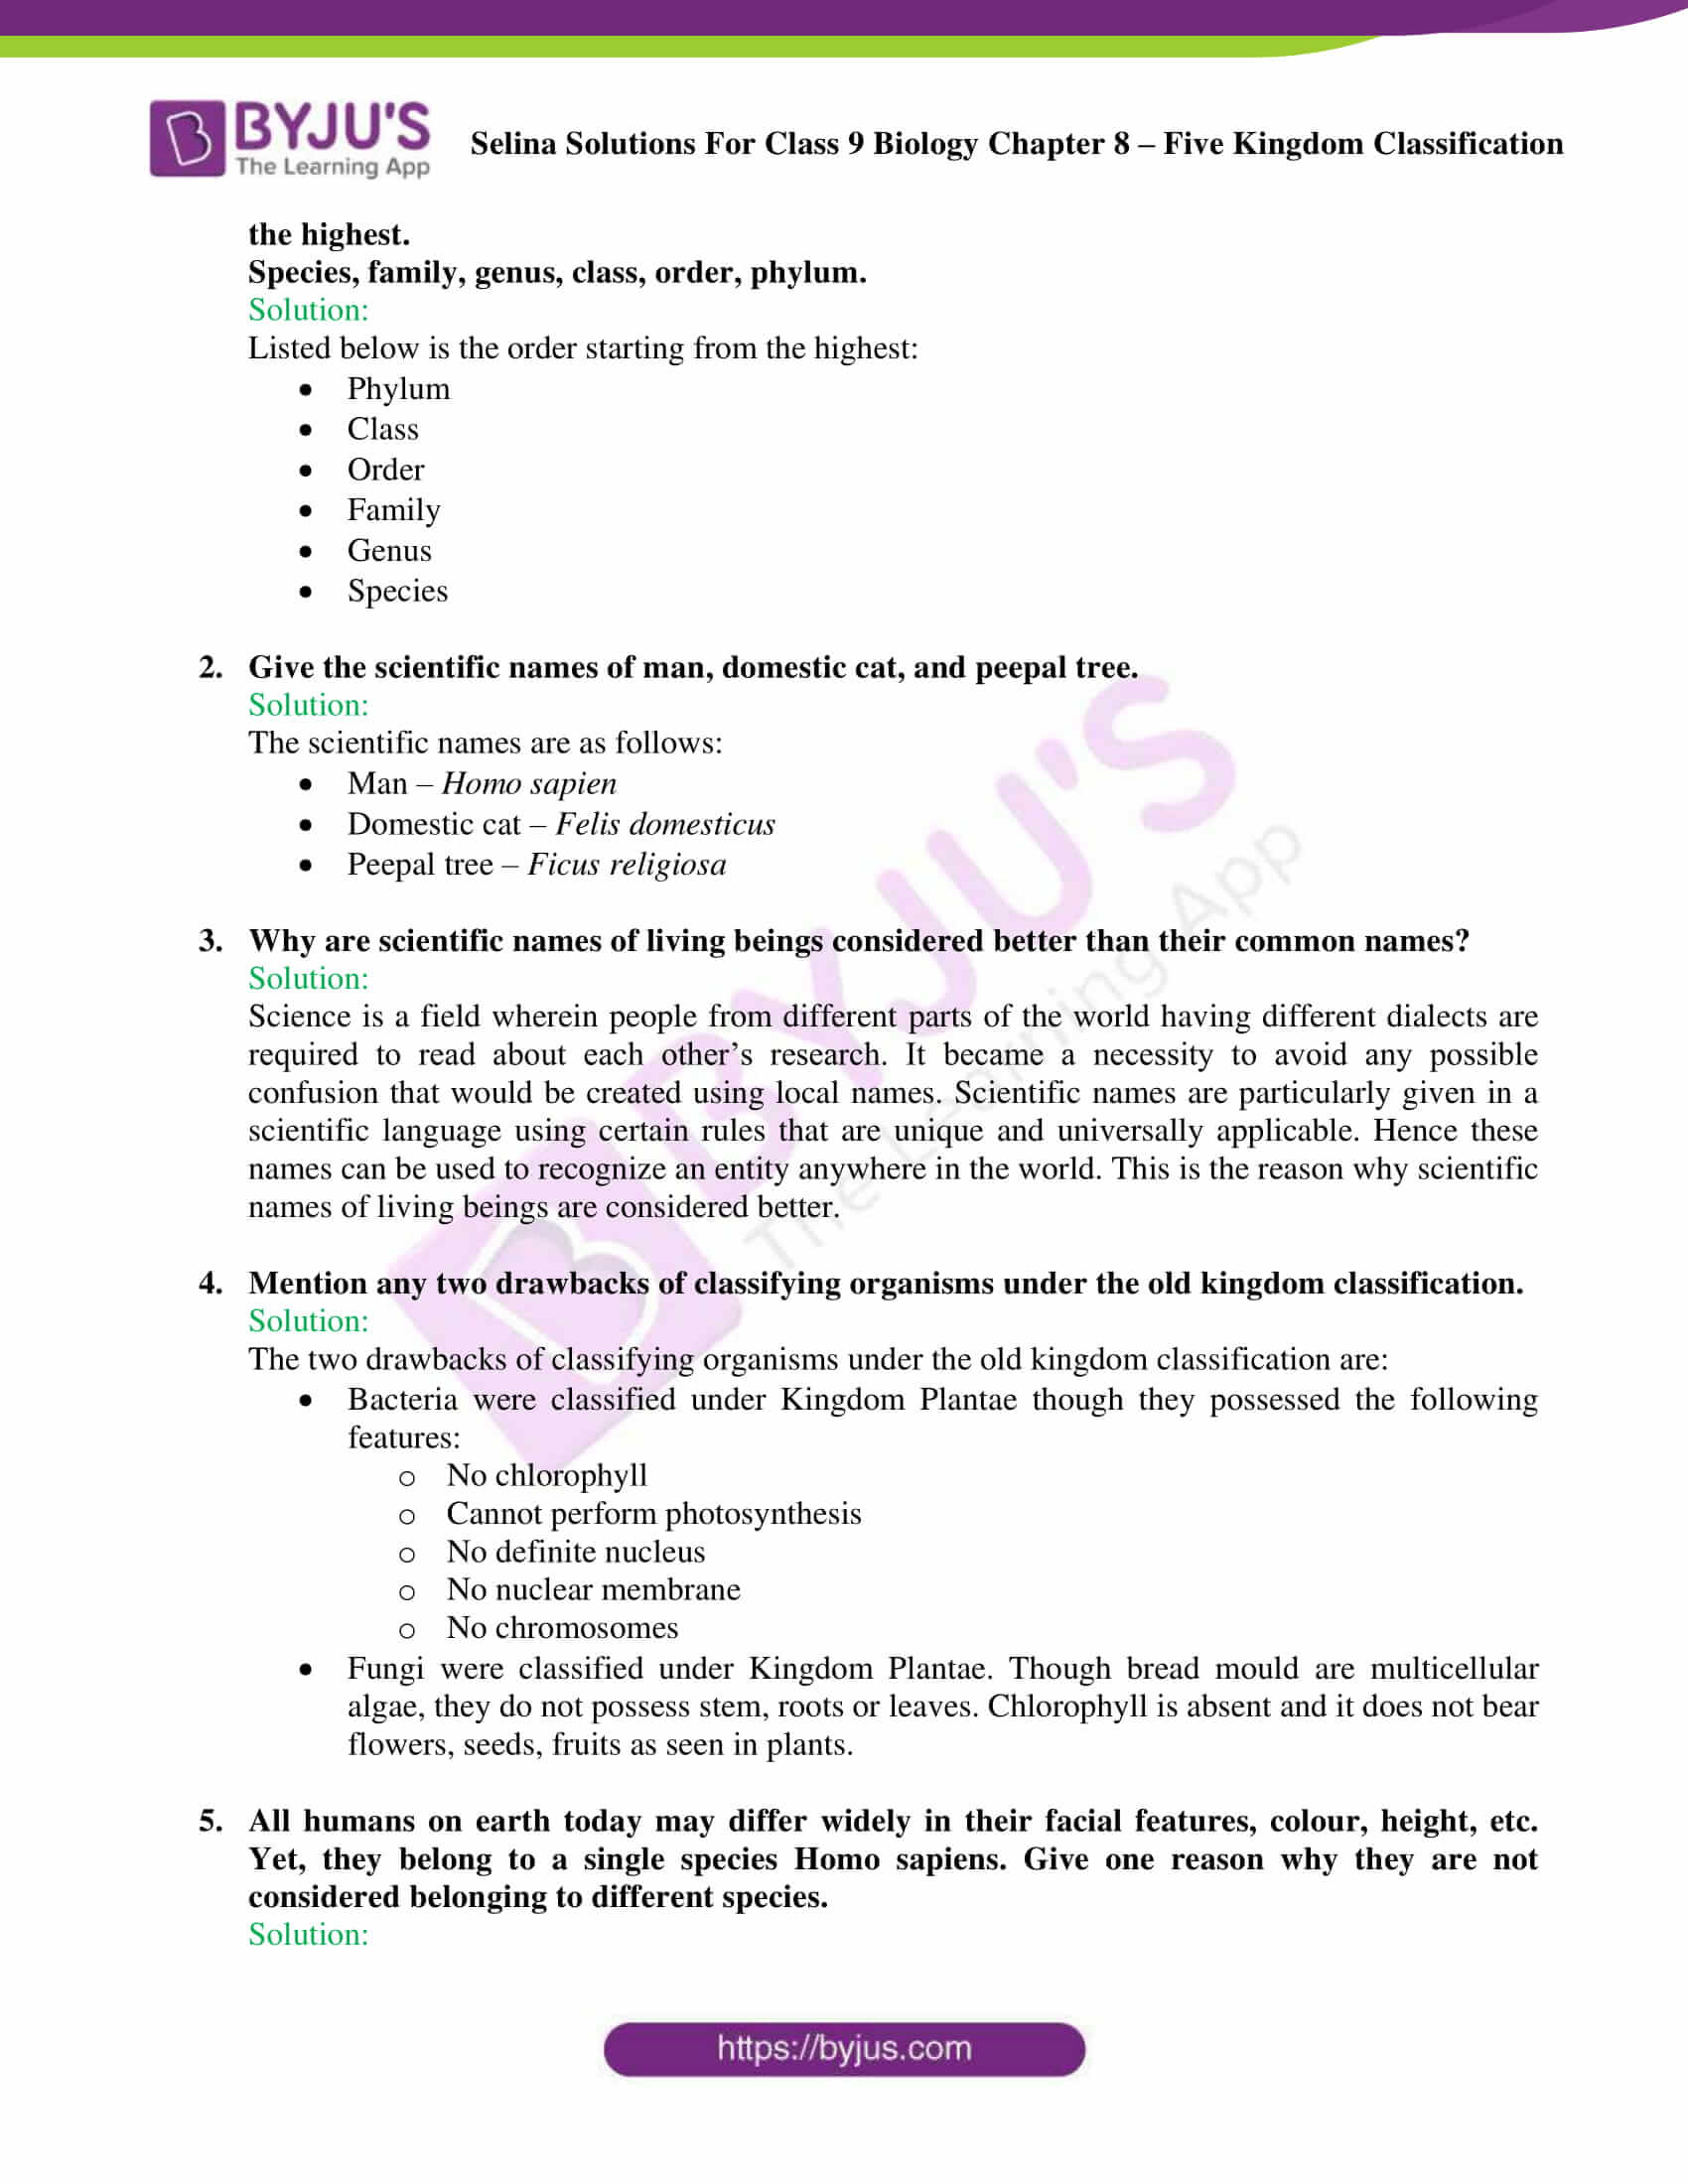 Selina Solutions For Class 9 Biology Chapter 8 Five Kingdom Classification part 07